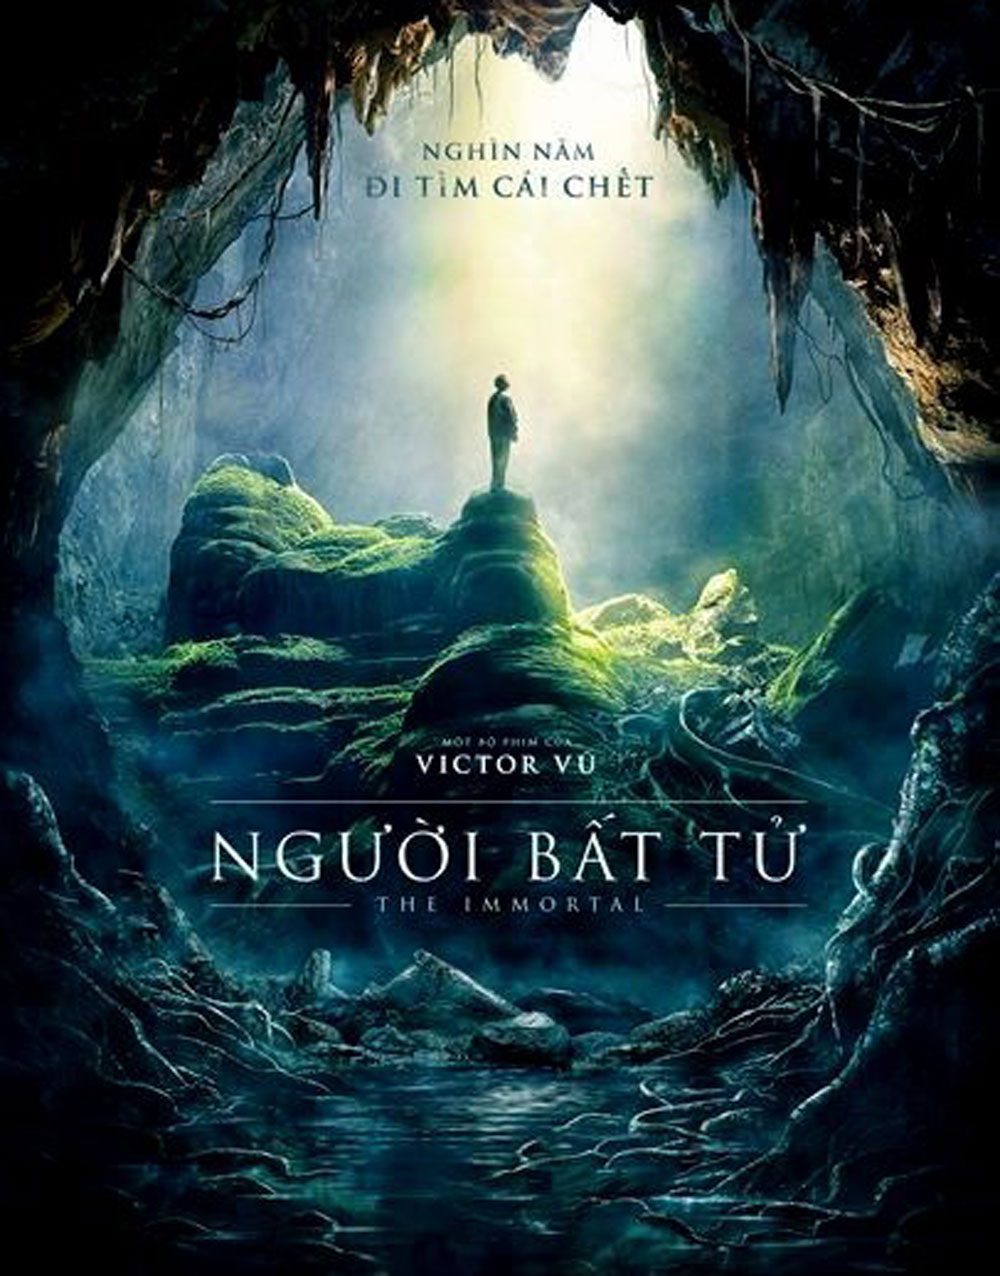 OV director, latest film, most beautiful spots,  blockbuster film Nguoi Bat Tu, The Immortal, Victor Vu, dark story, most beautiful scenery